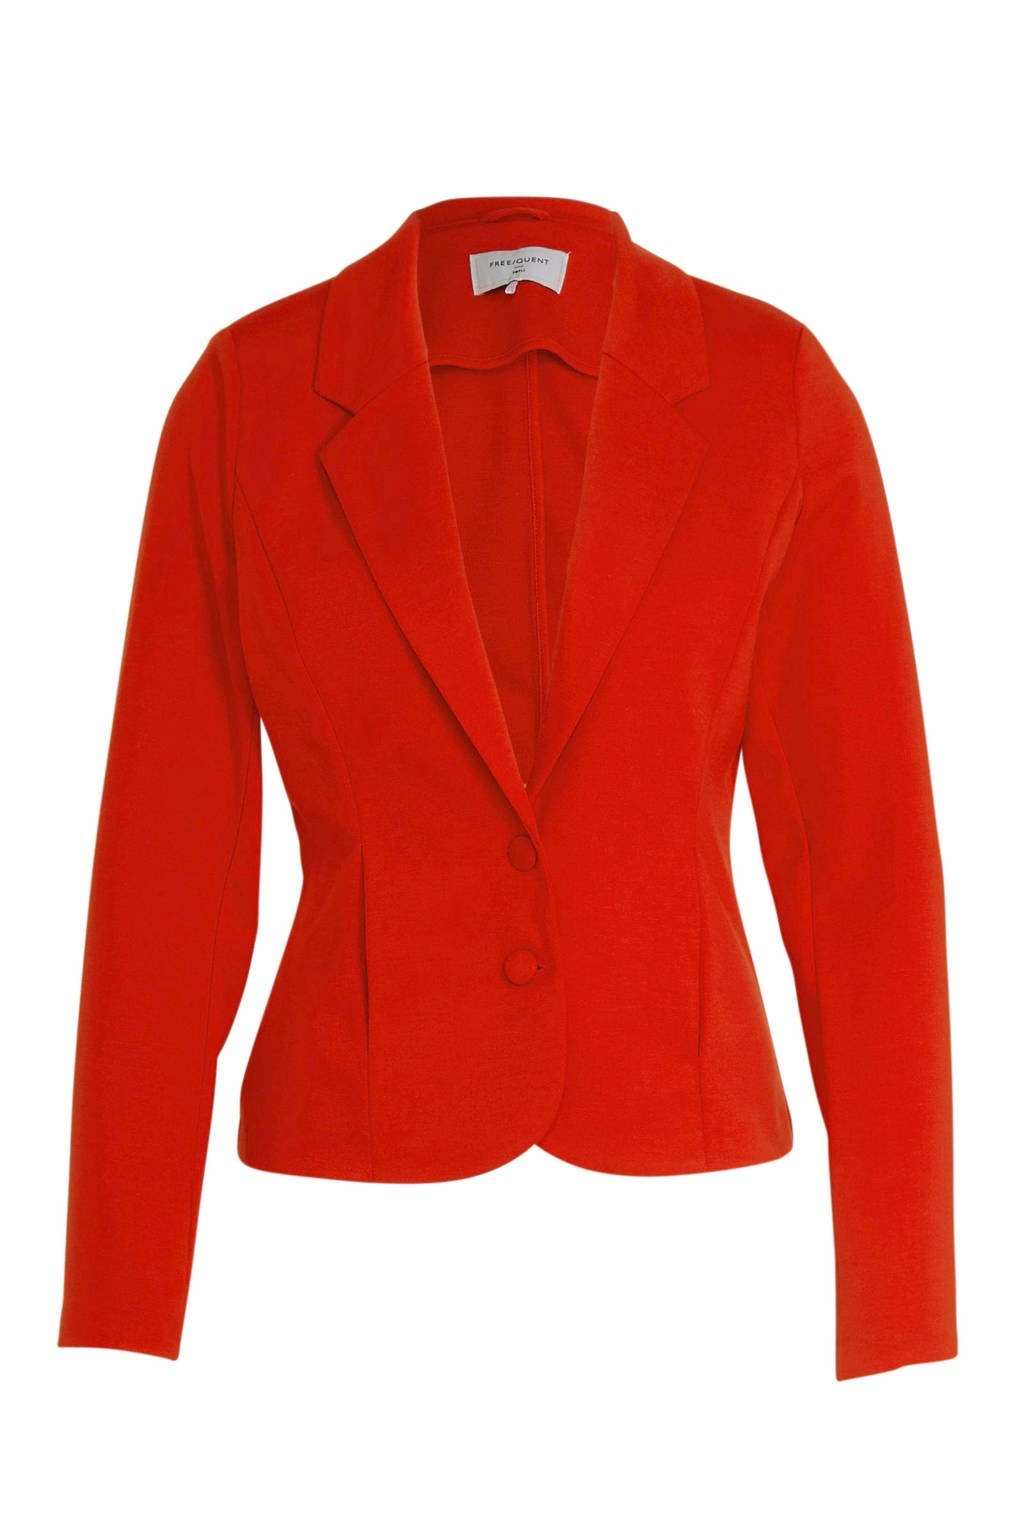 FREEQUENT blazer rood, Rood